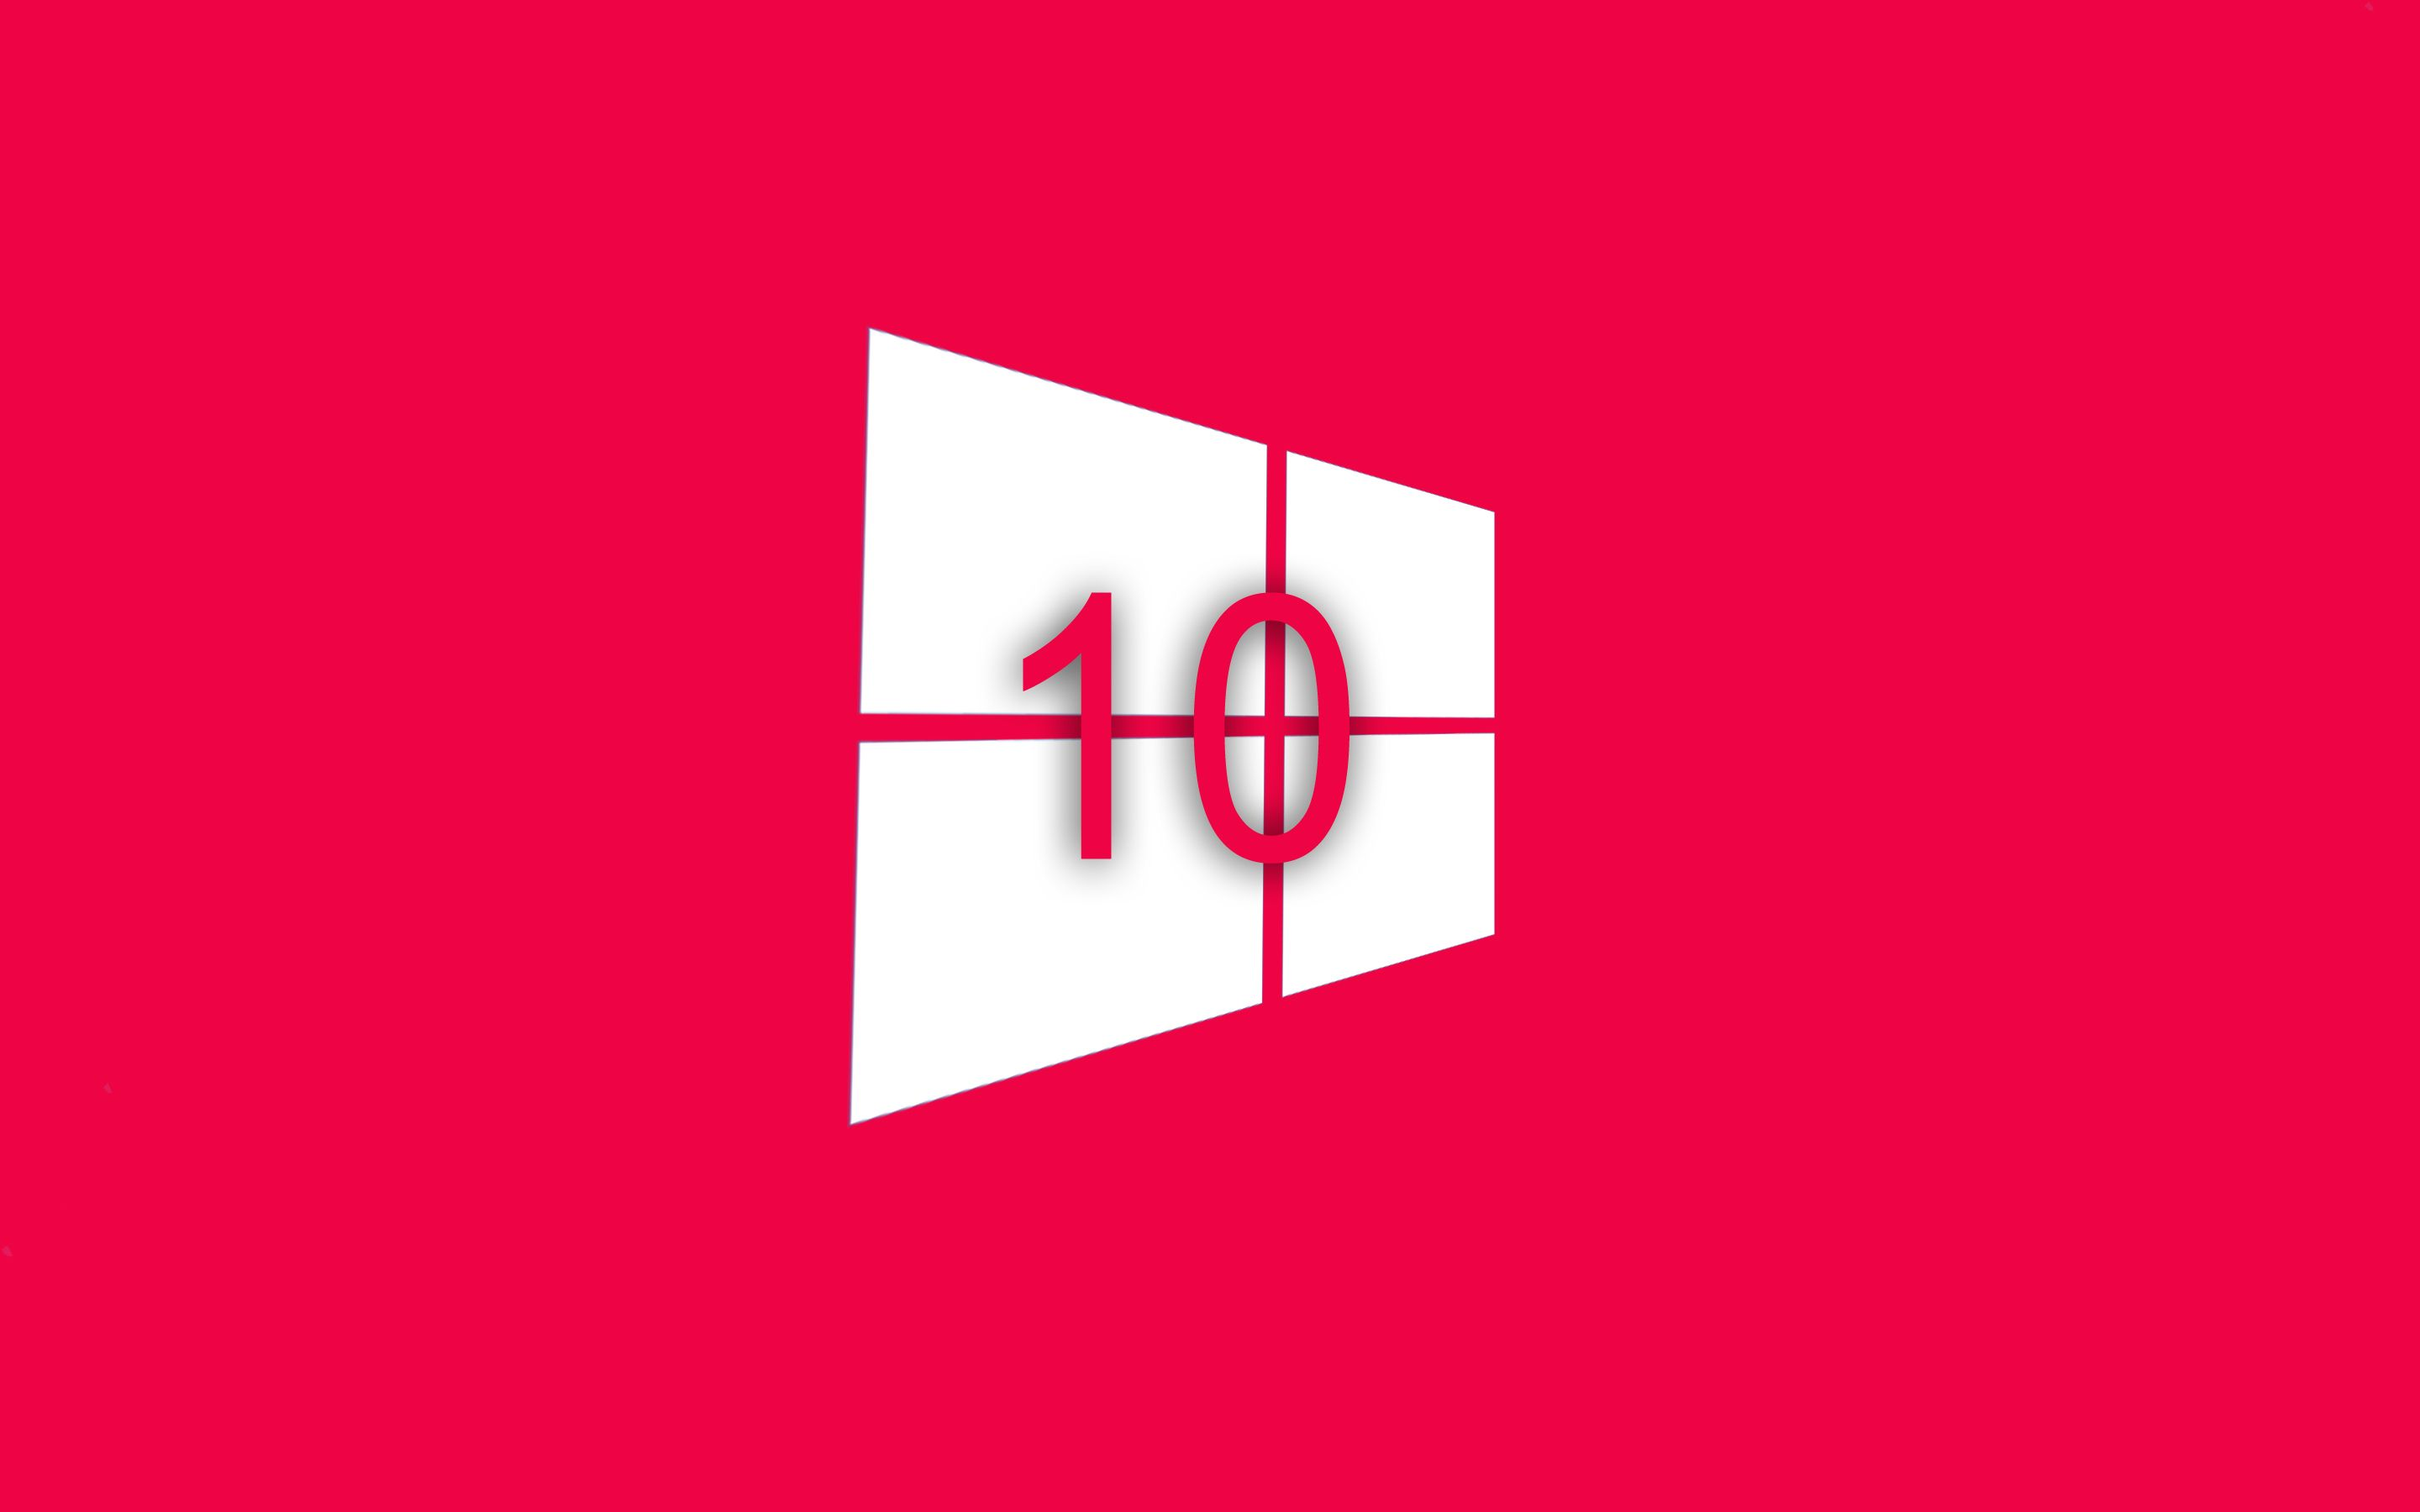 windows 10 hd wallpaper httpsaqibsomal com201508